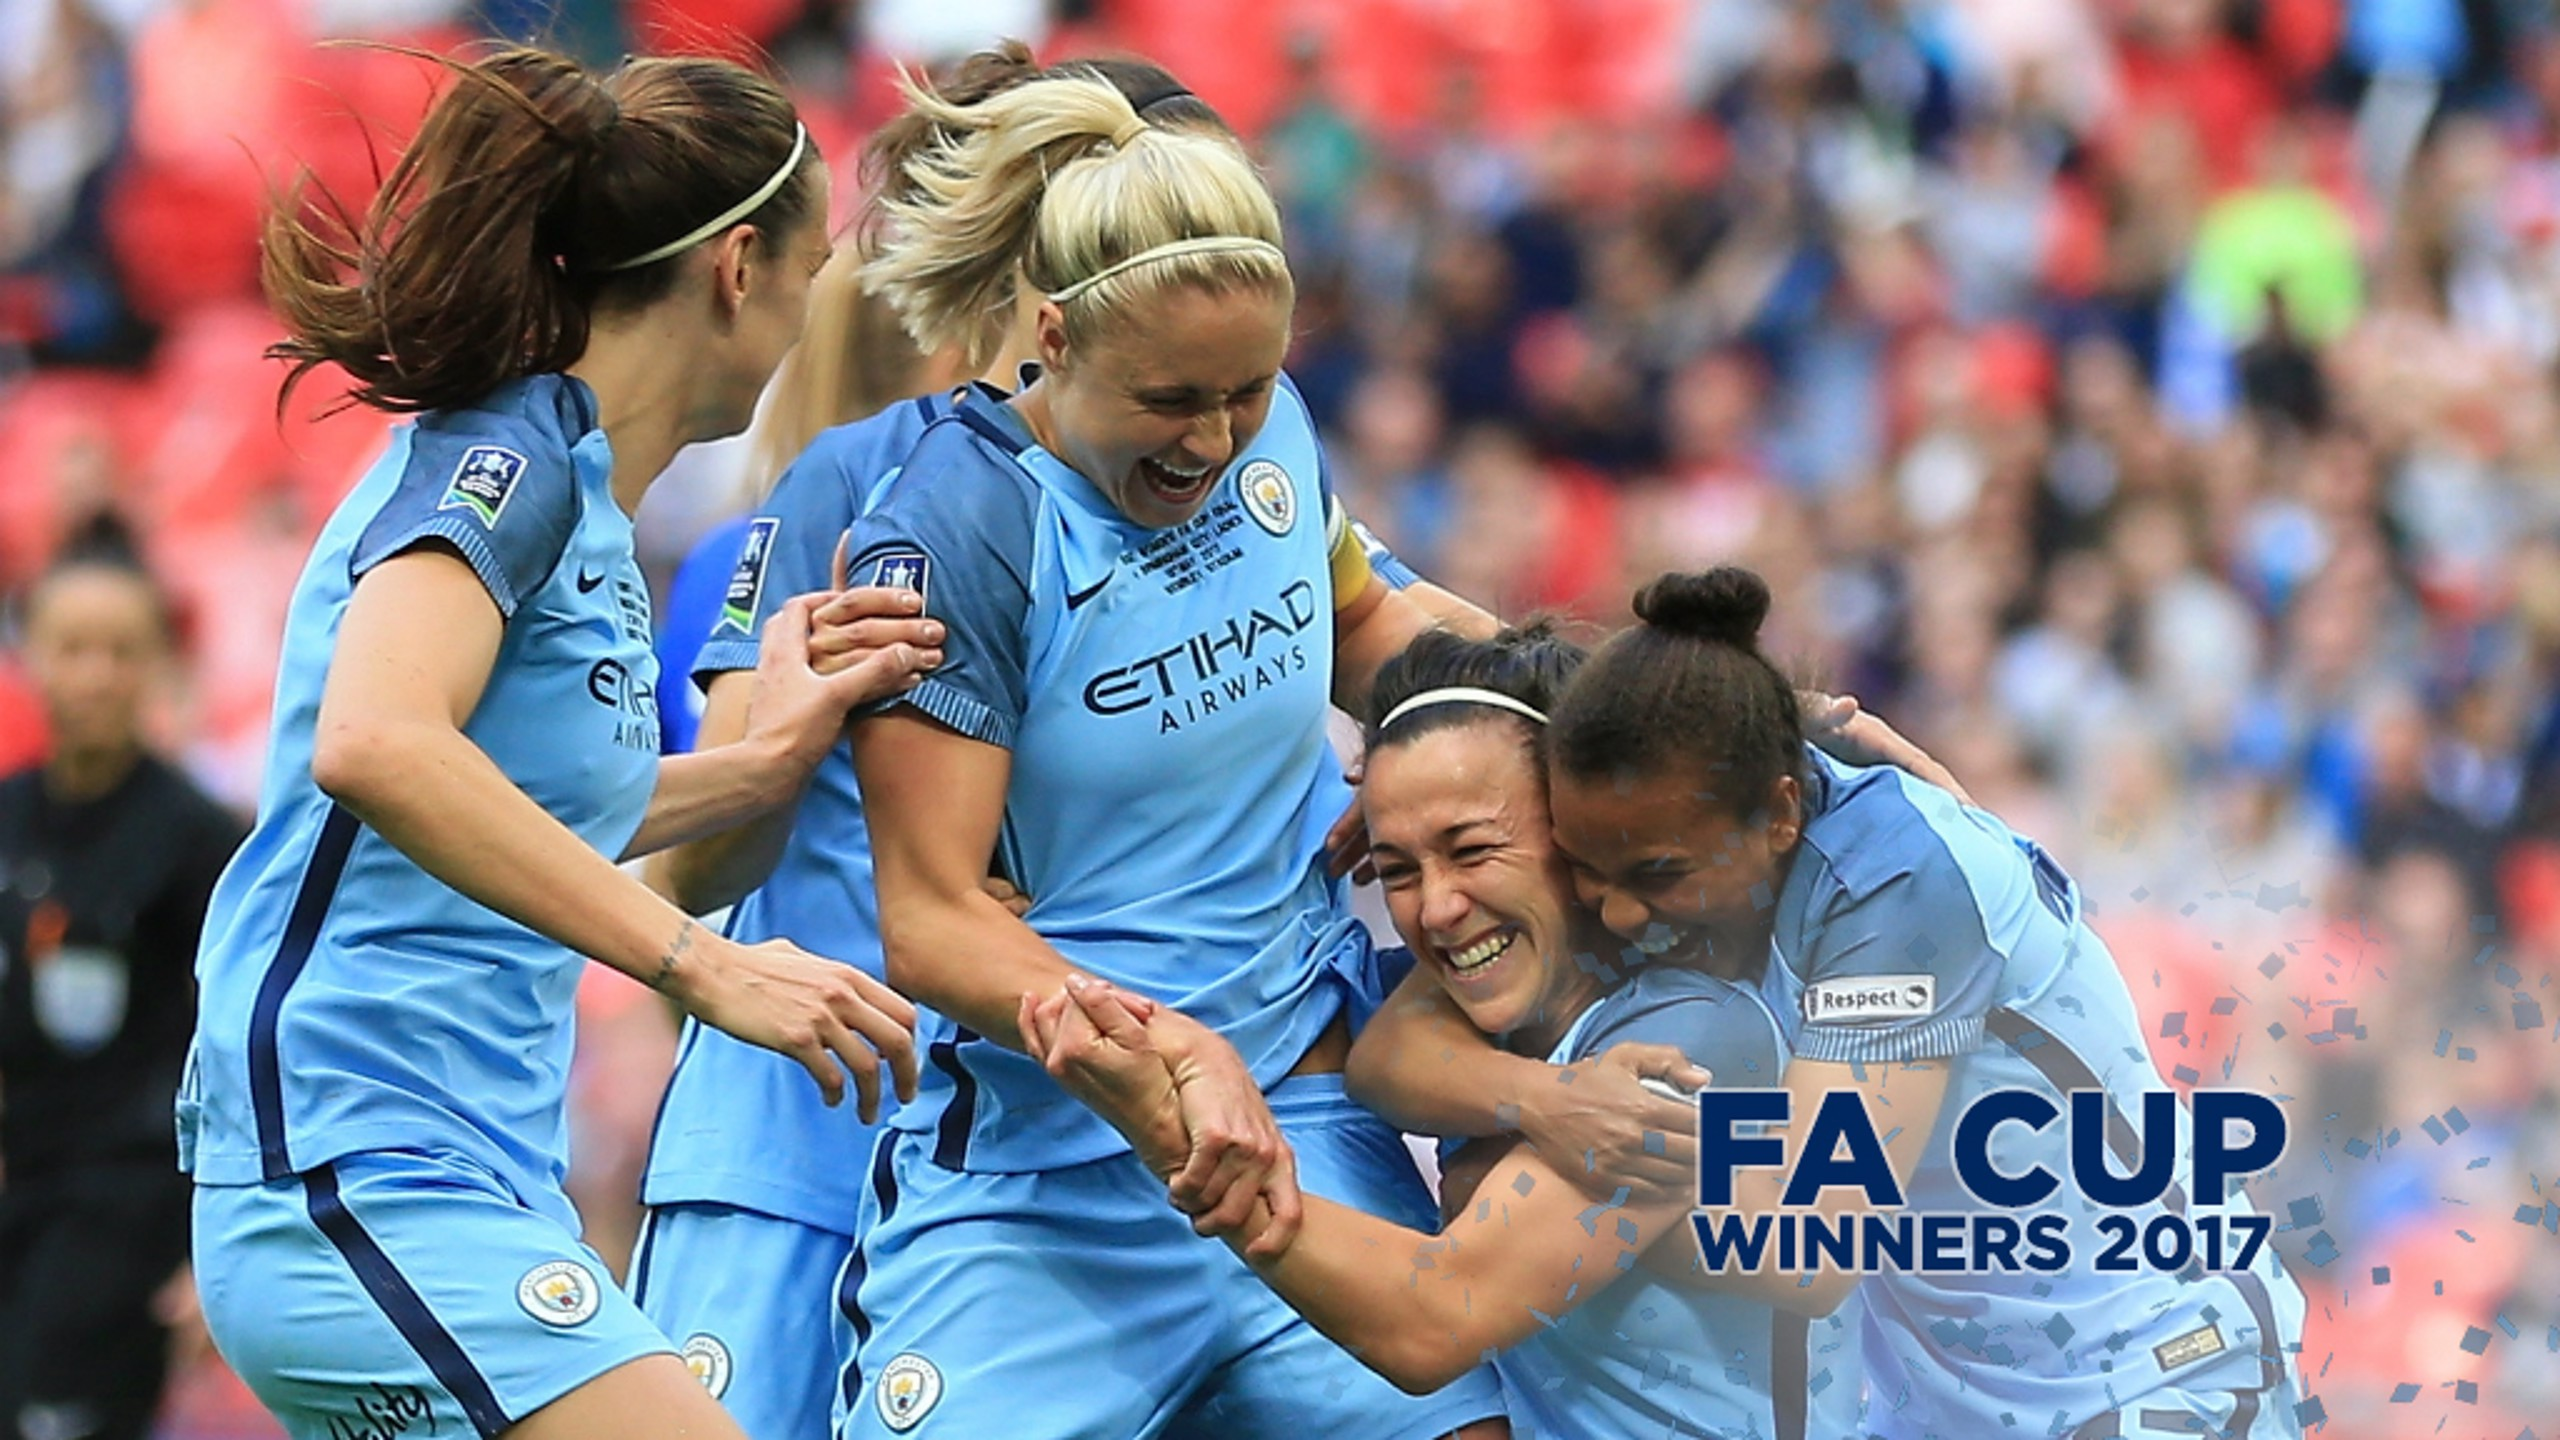 GOLDEN BRONZE: Lucy Bronze is congratulated having opened the scoring at Wembley